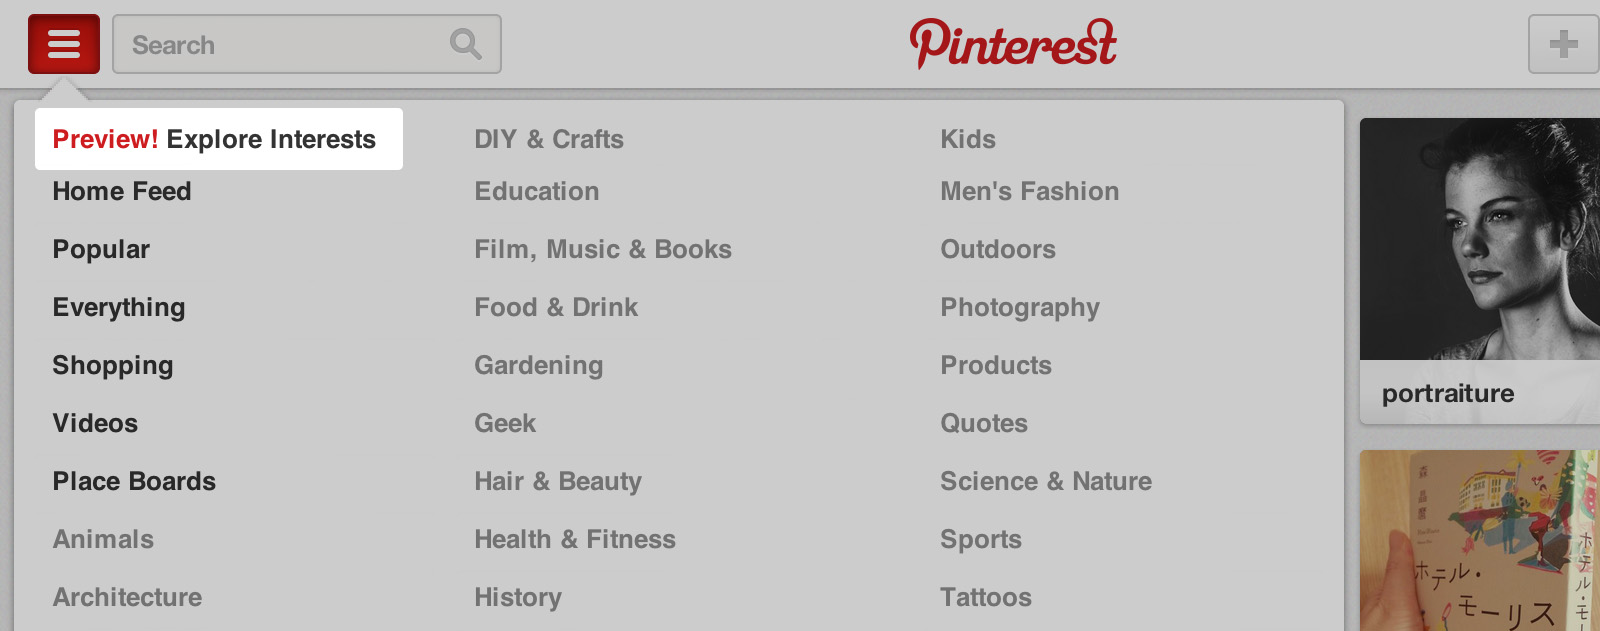 Pinterest preview